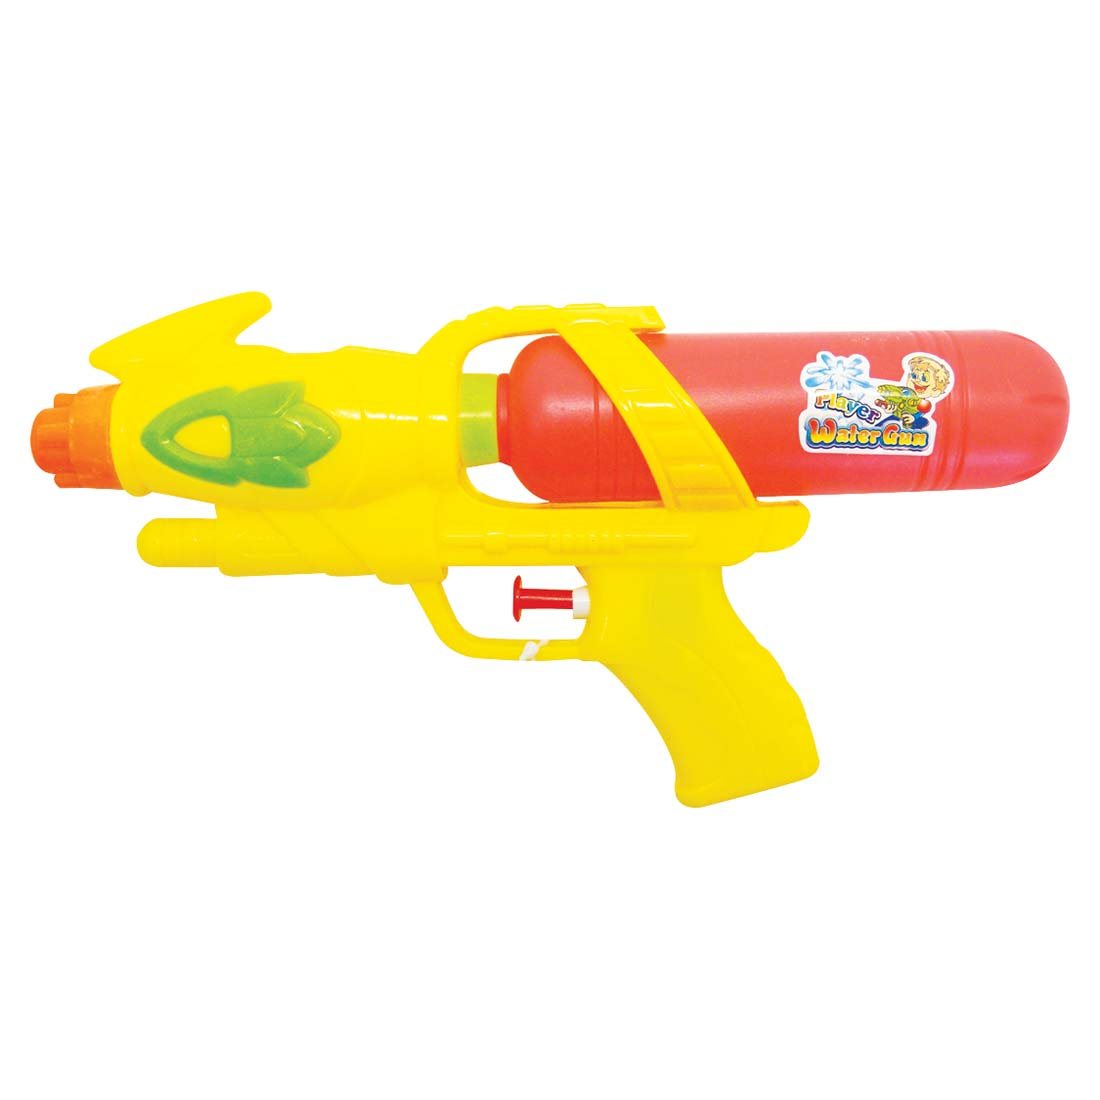 View WATER GUN 10 INCH ASSORTED COLORS STYLE 1